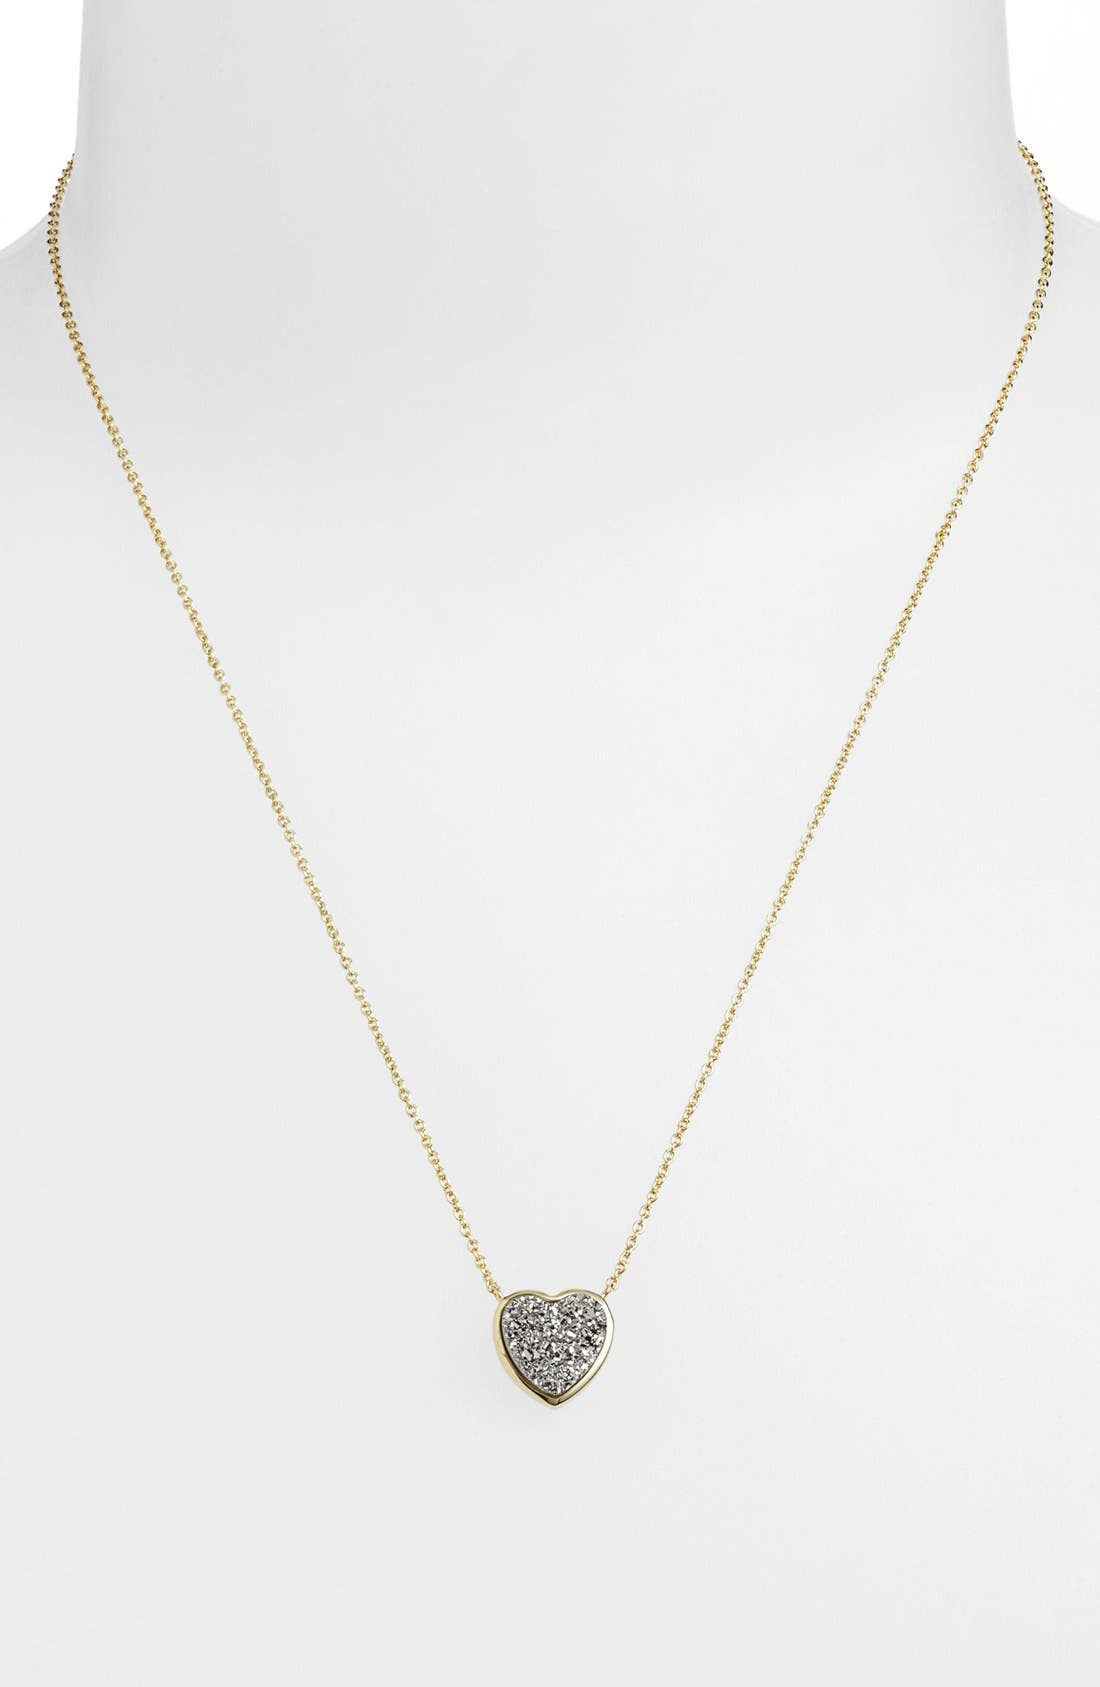 Main Image - Marcia Moran Heart Drusy Pendant Necklace (Online Only)